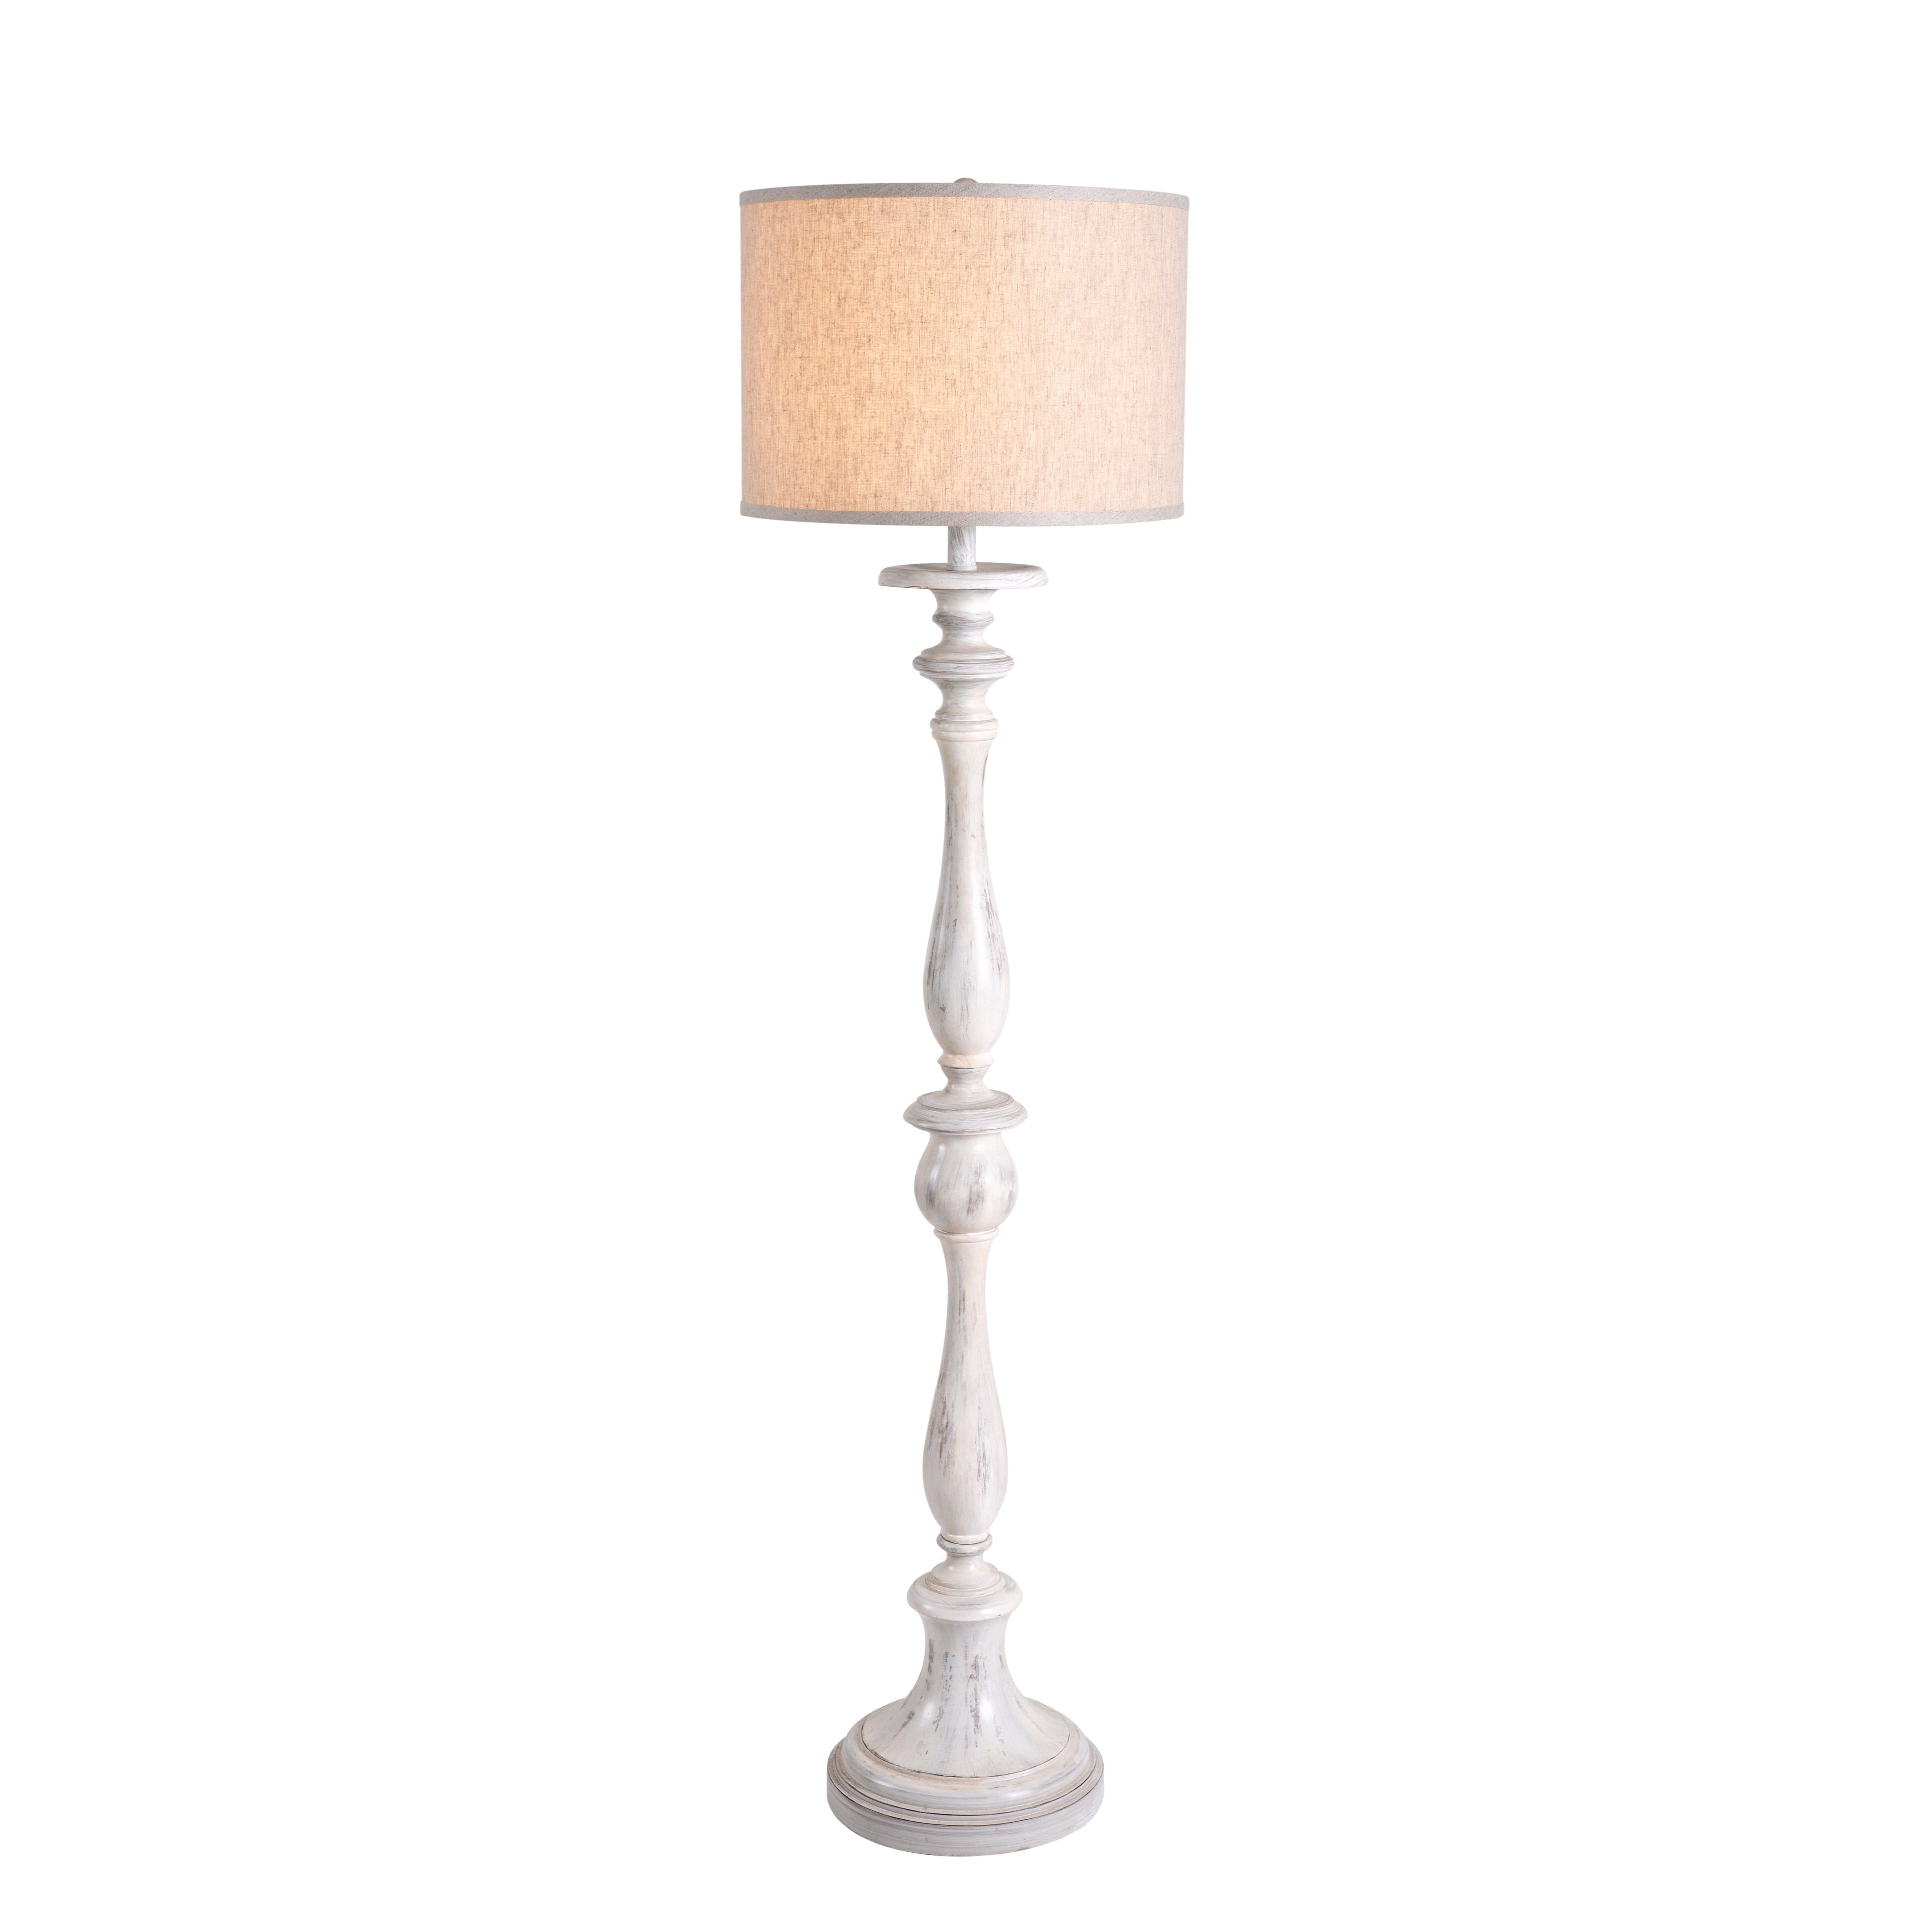 Distressed Off White Floor Lamp